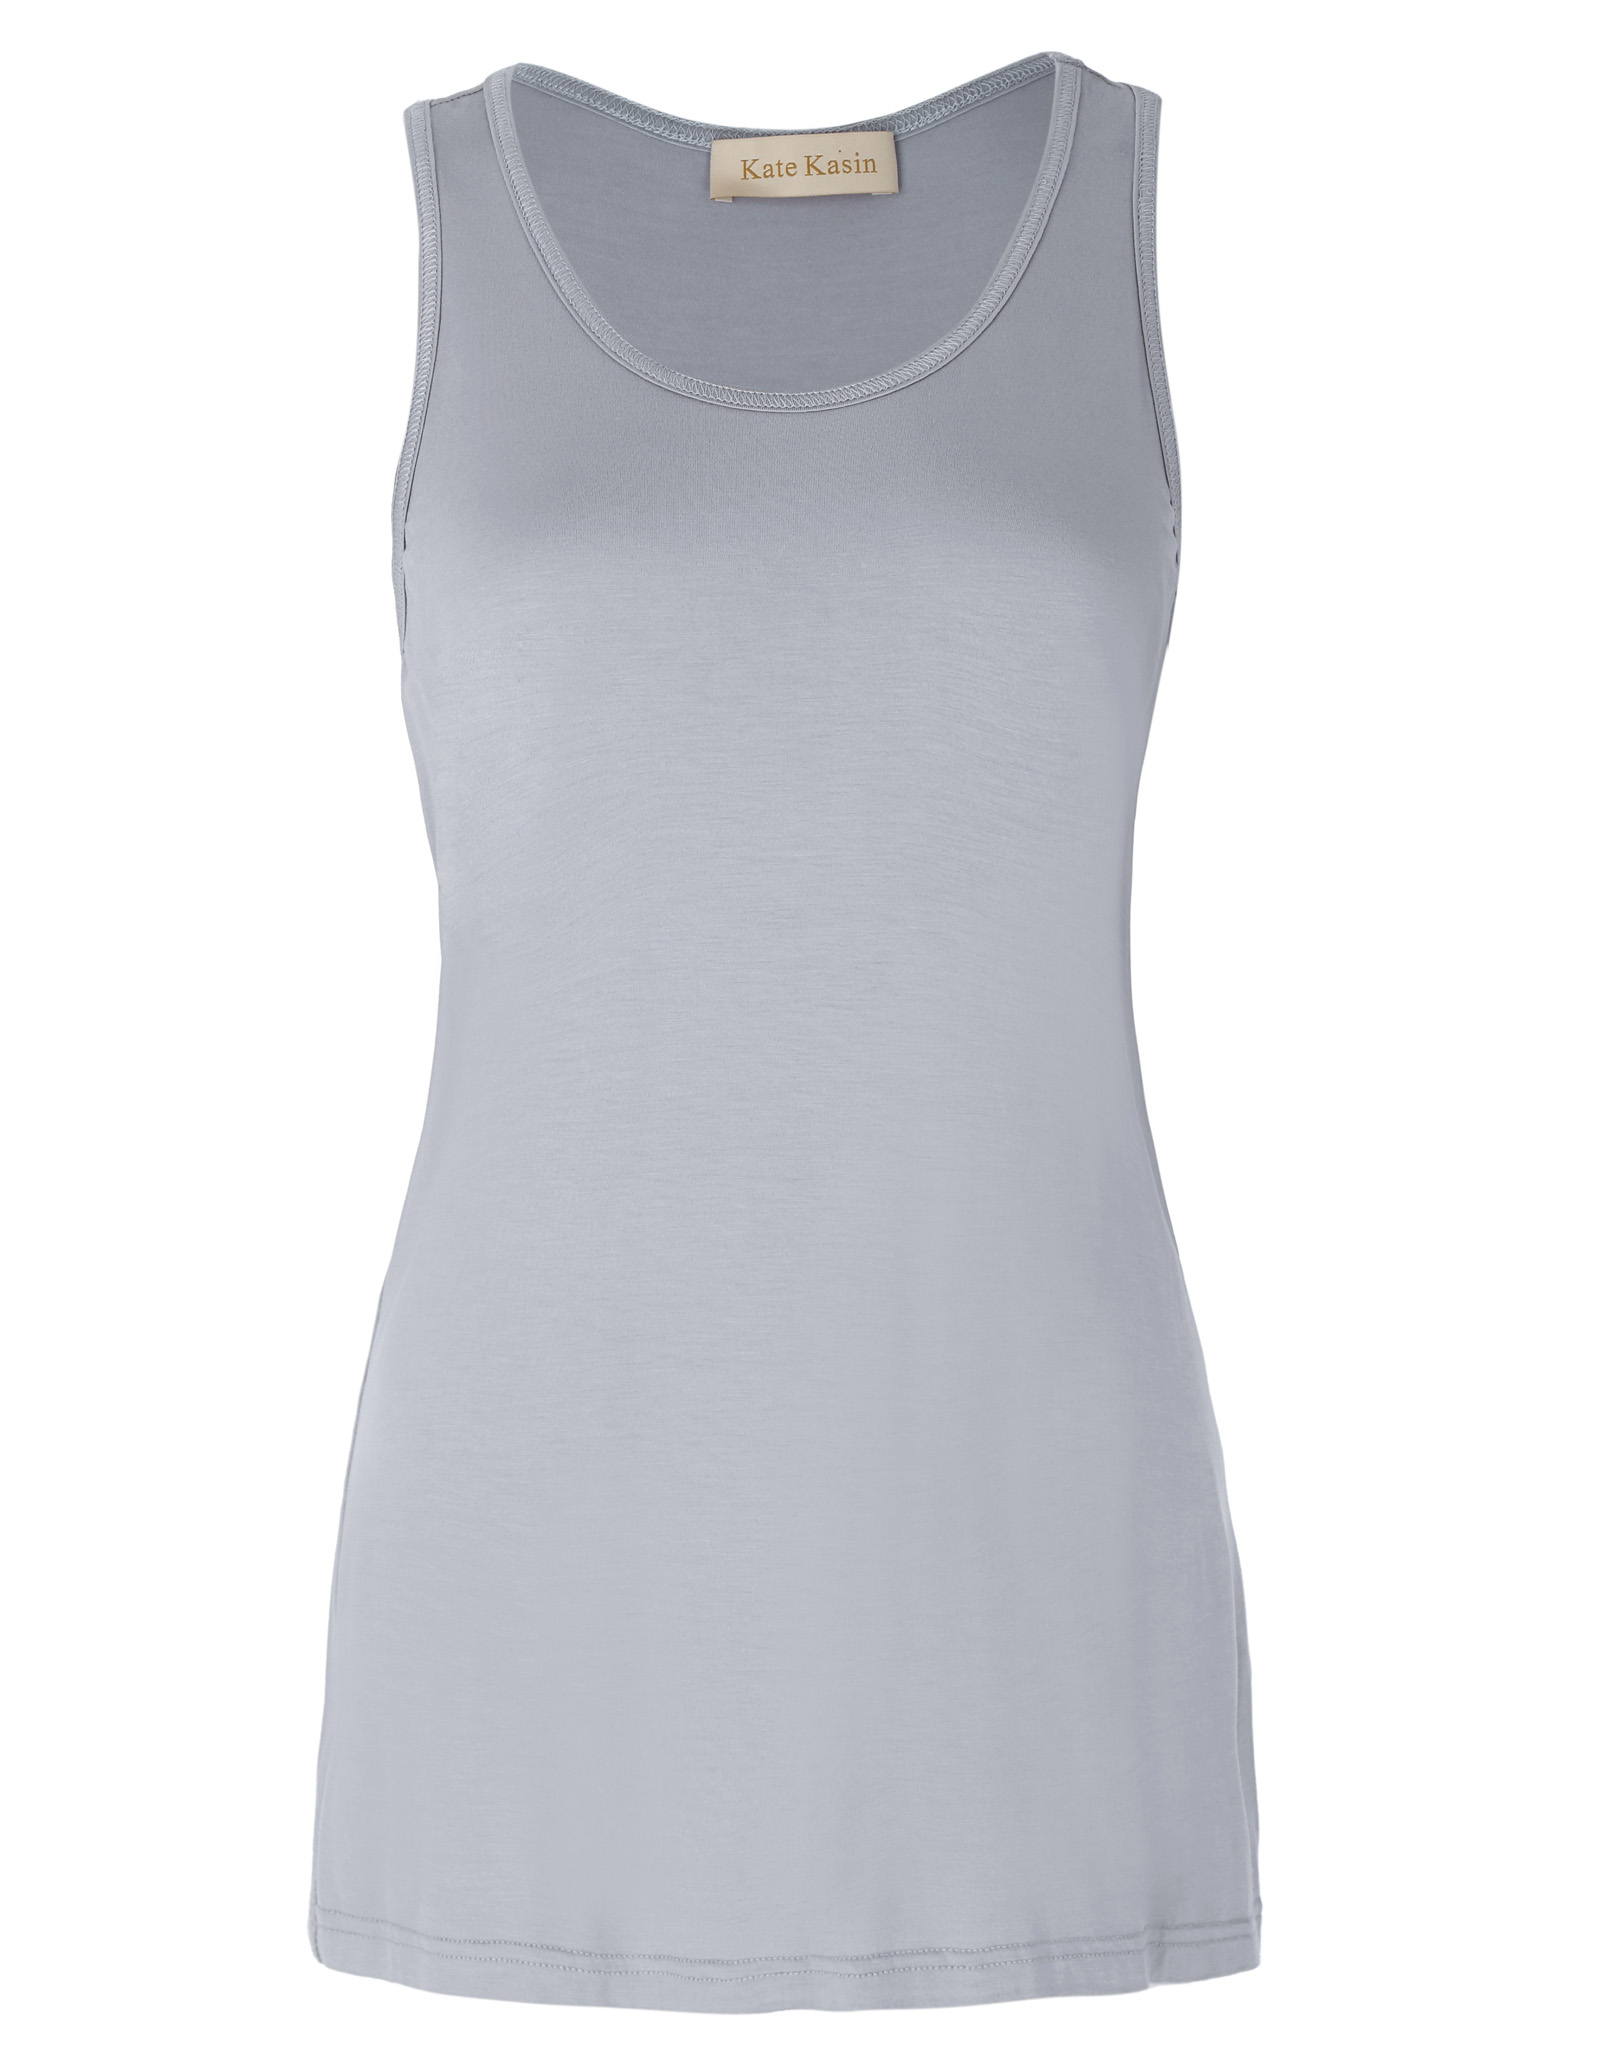 grey black slim tank top Women Everyday Soft & Comfortable Cotton Tops rock sexy bodycon cropped maglietta donna